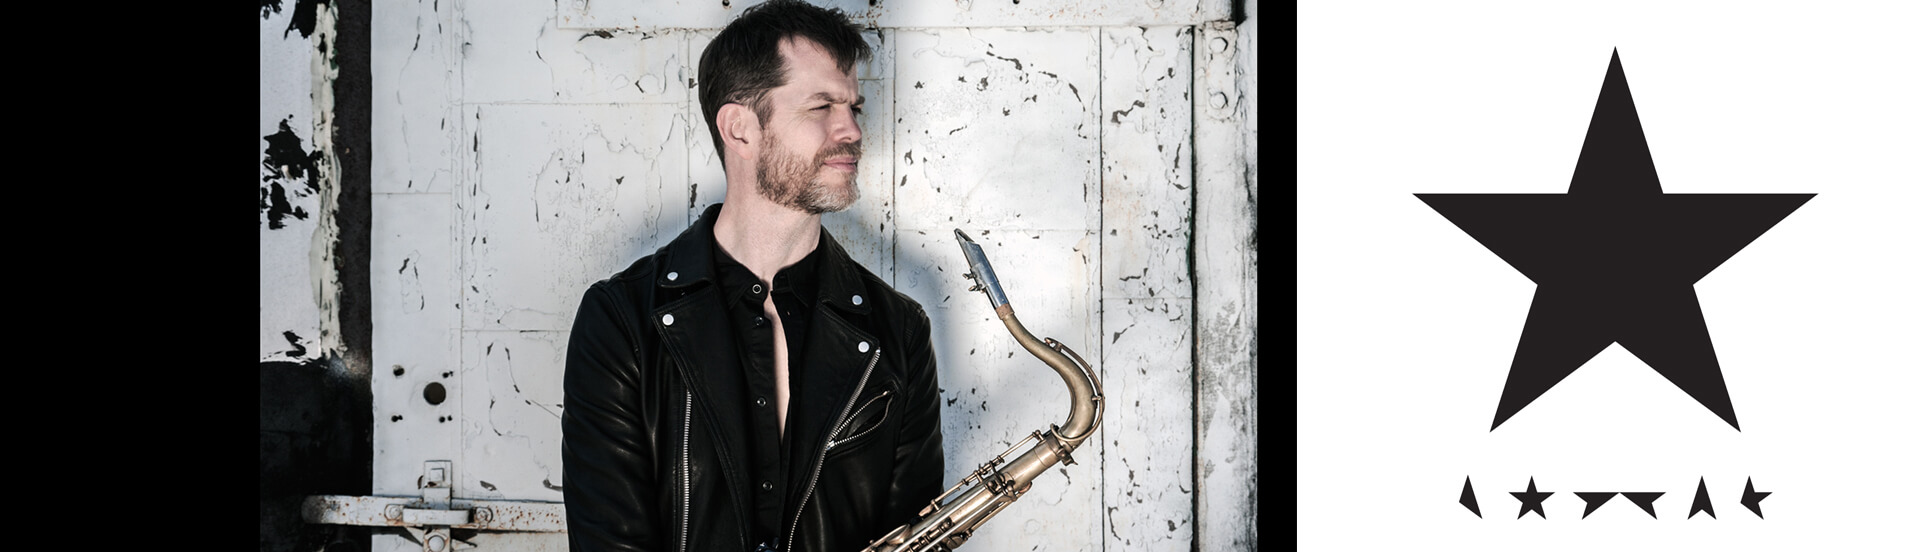 Donny McCaslin Quartet - David Bowie's Blackstar band